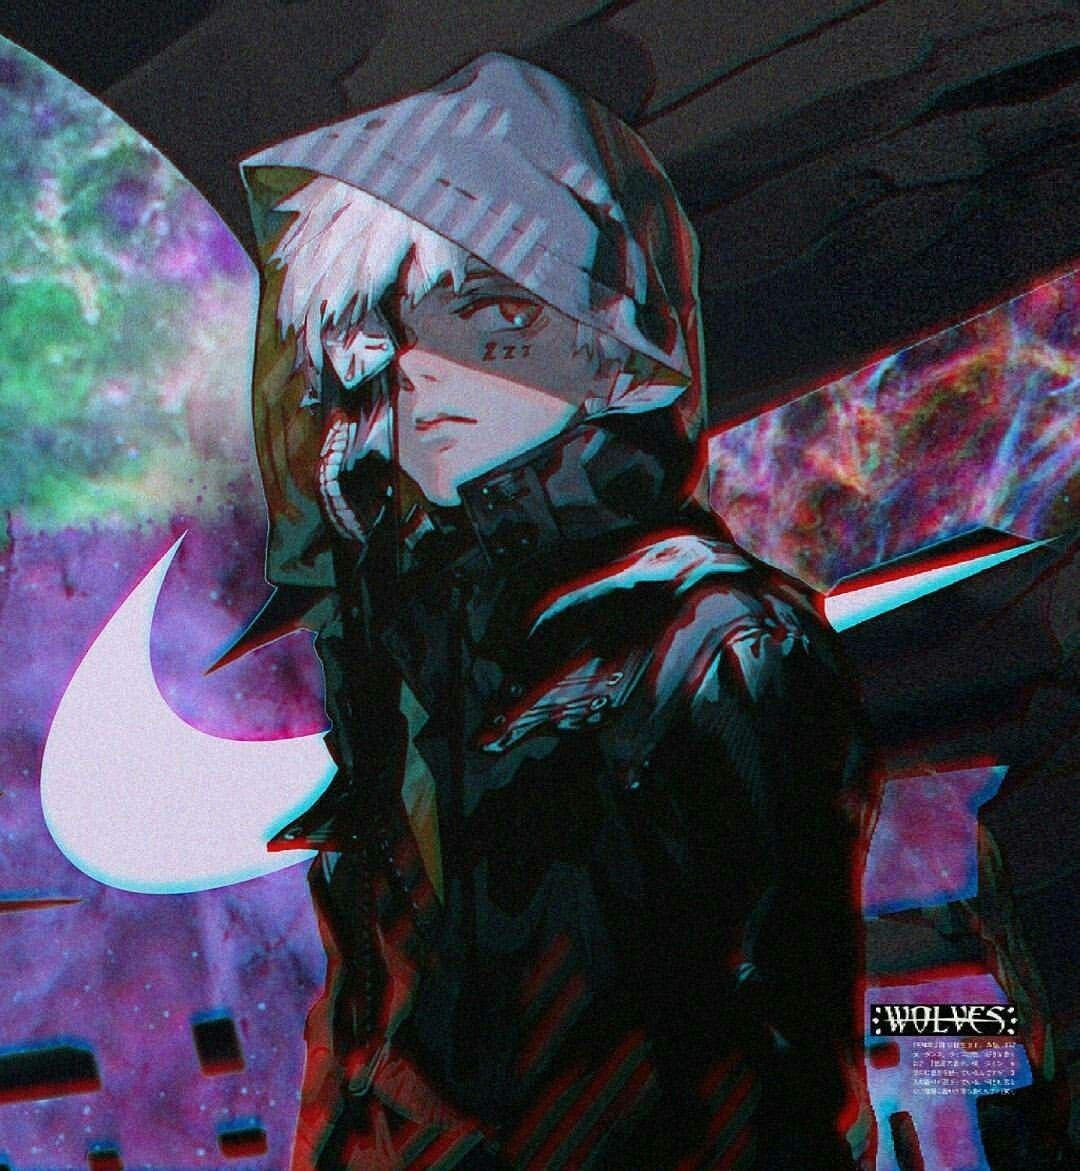 Pin by 47 on Anime (With images) Aesthetic anime, Black